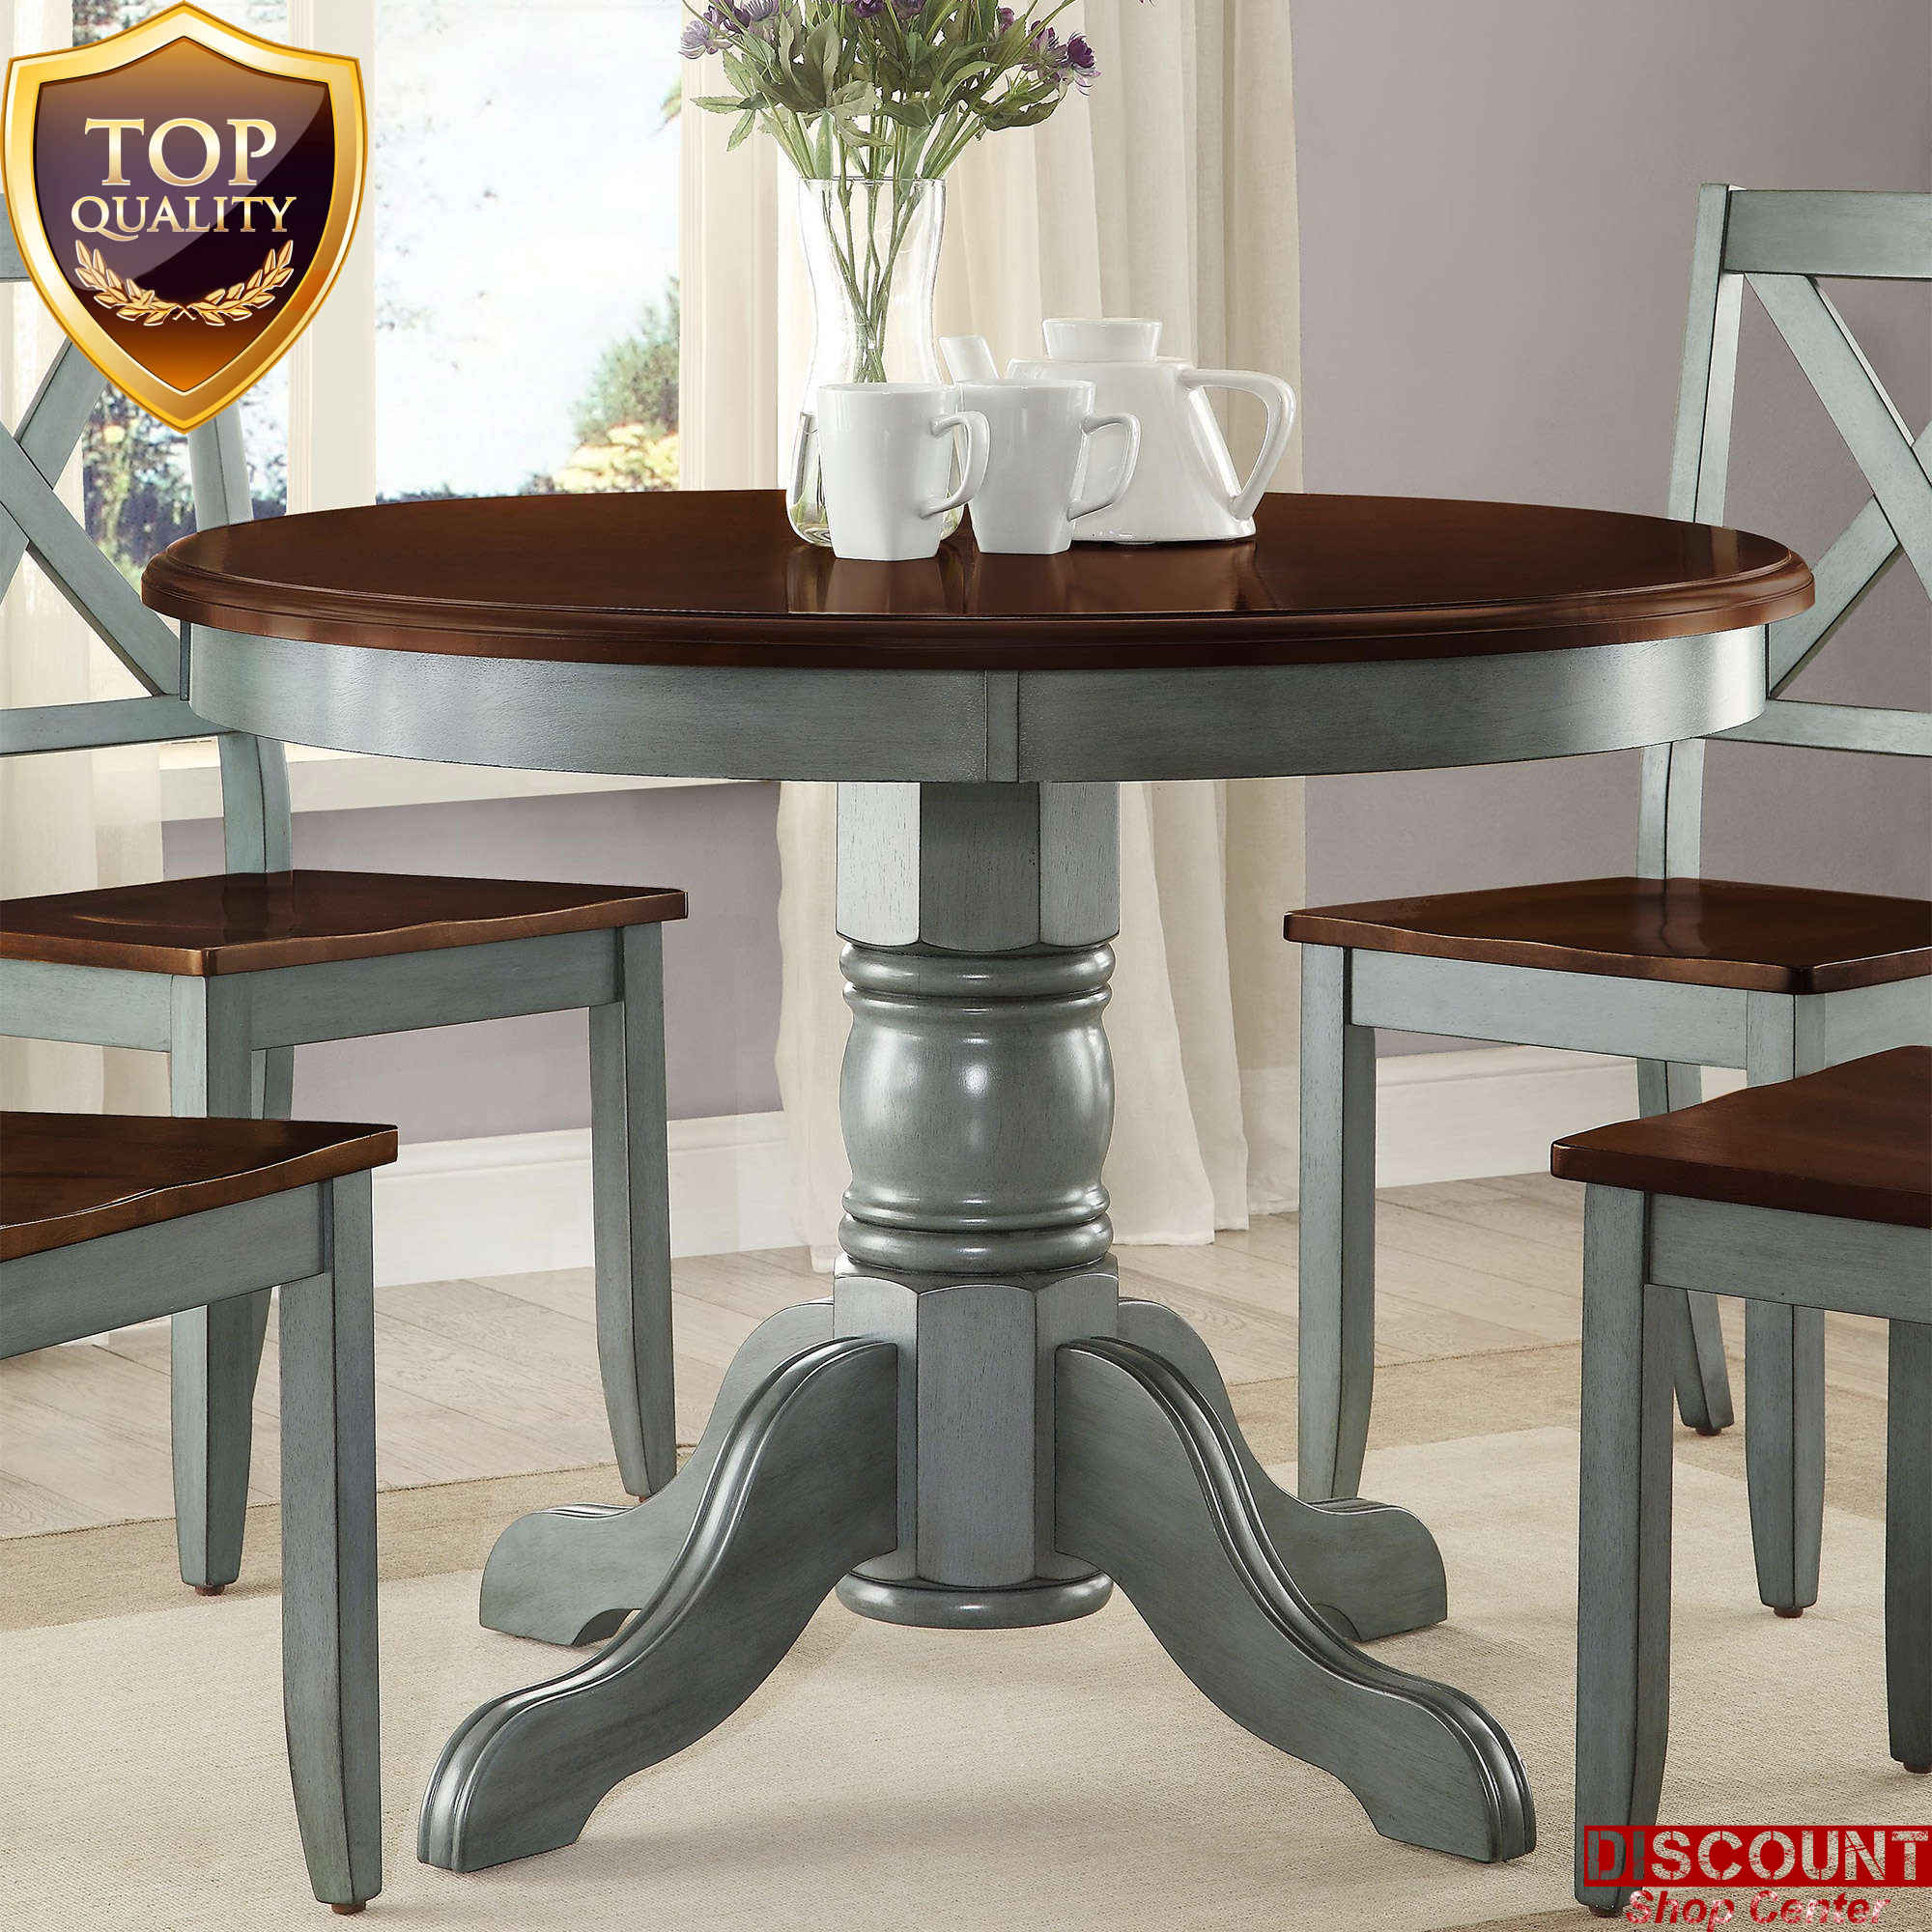 Remarkable Expandable Round Dining Table Spin Room Furniture Inside Most Popular Rustic Mahogany Extending Dining Tables (View 18 of 25)